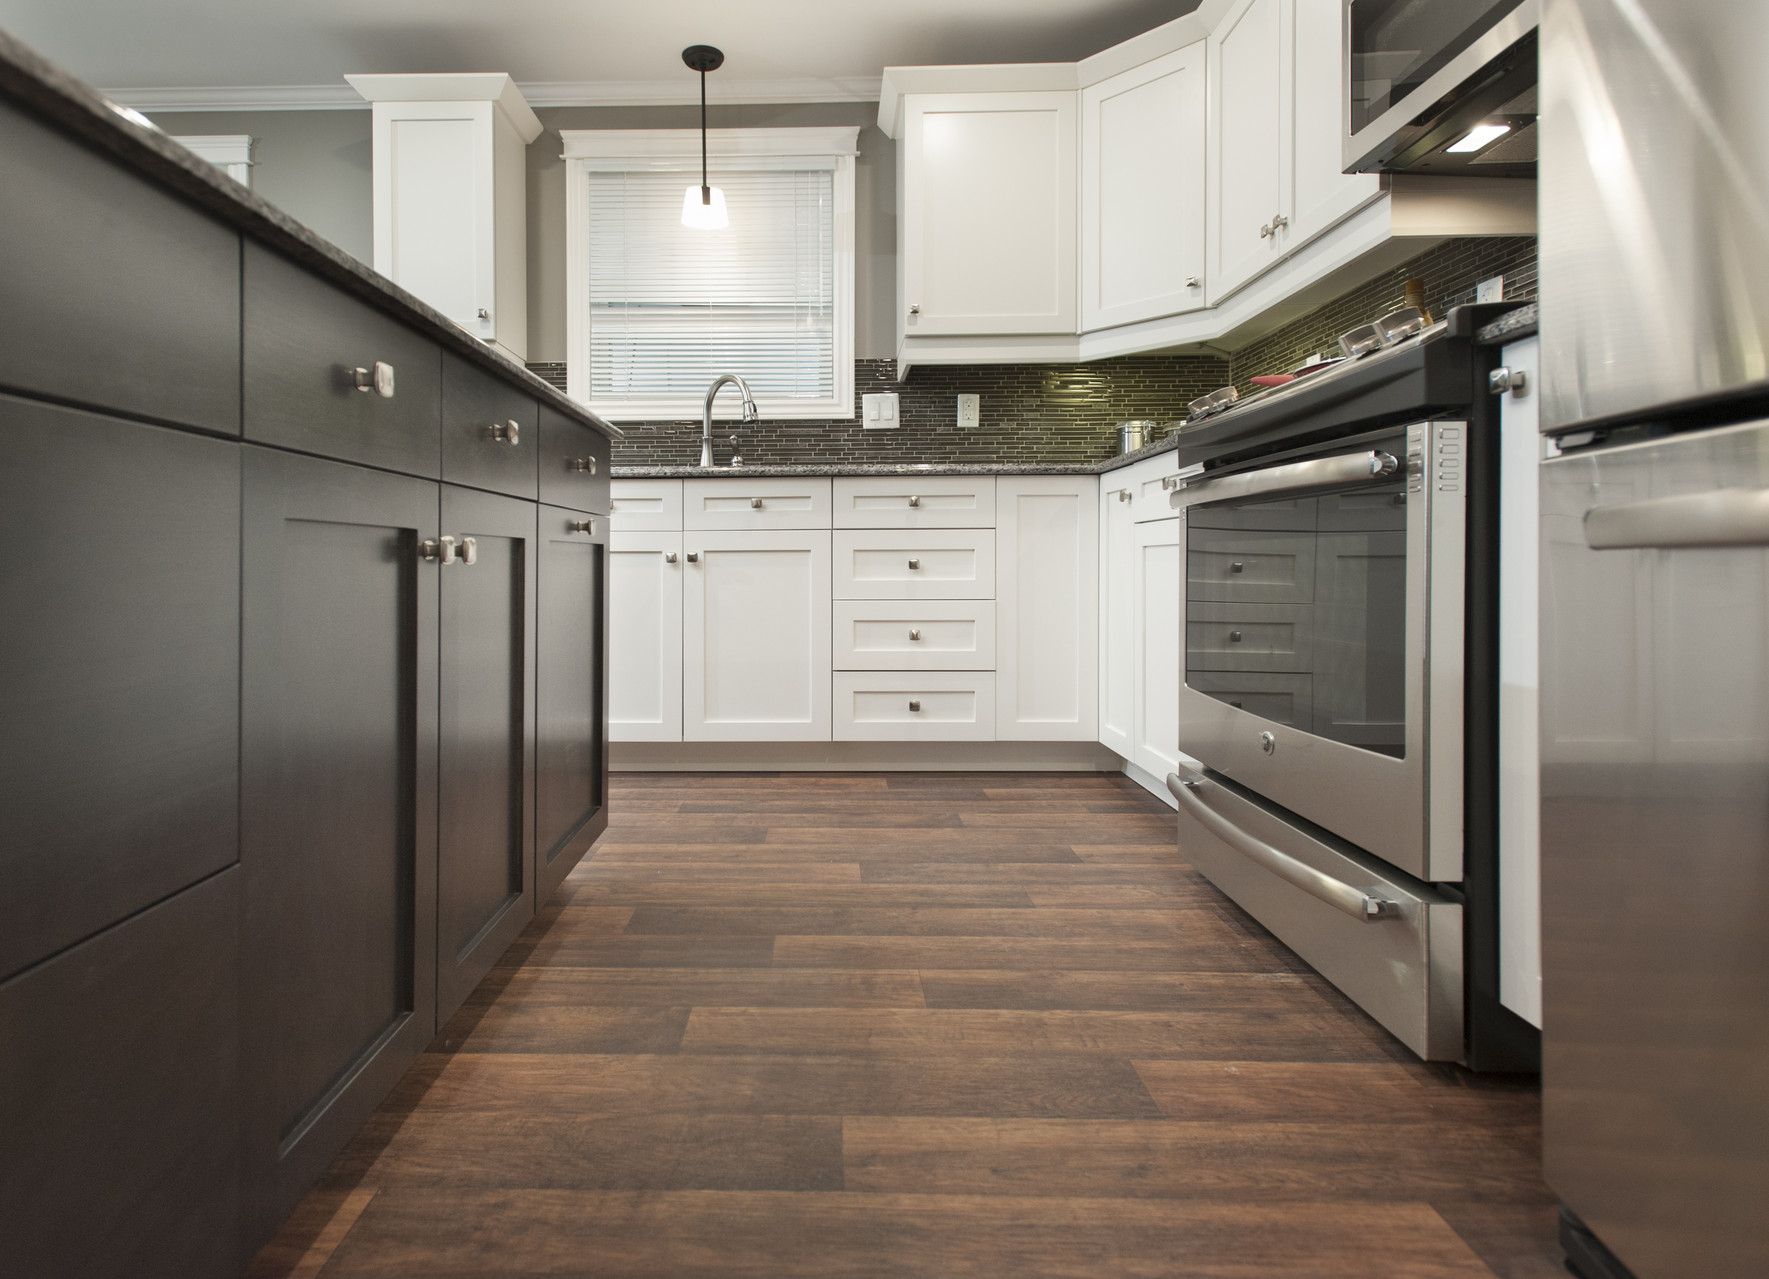 What flooring would you like in your new home?